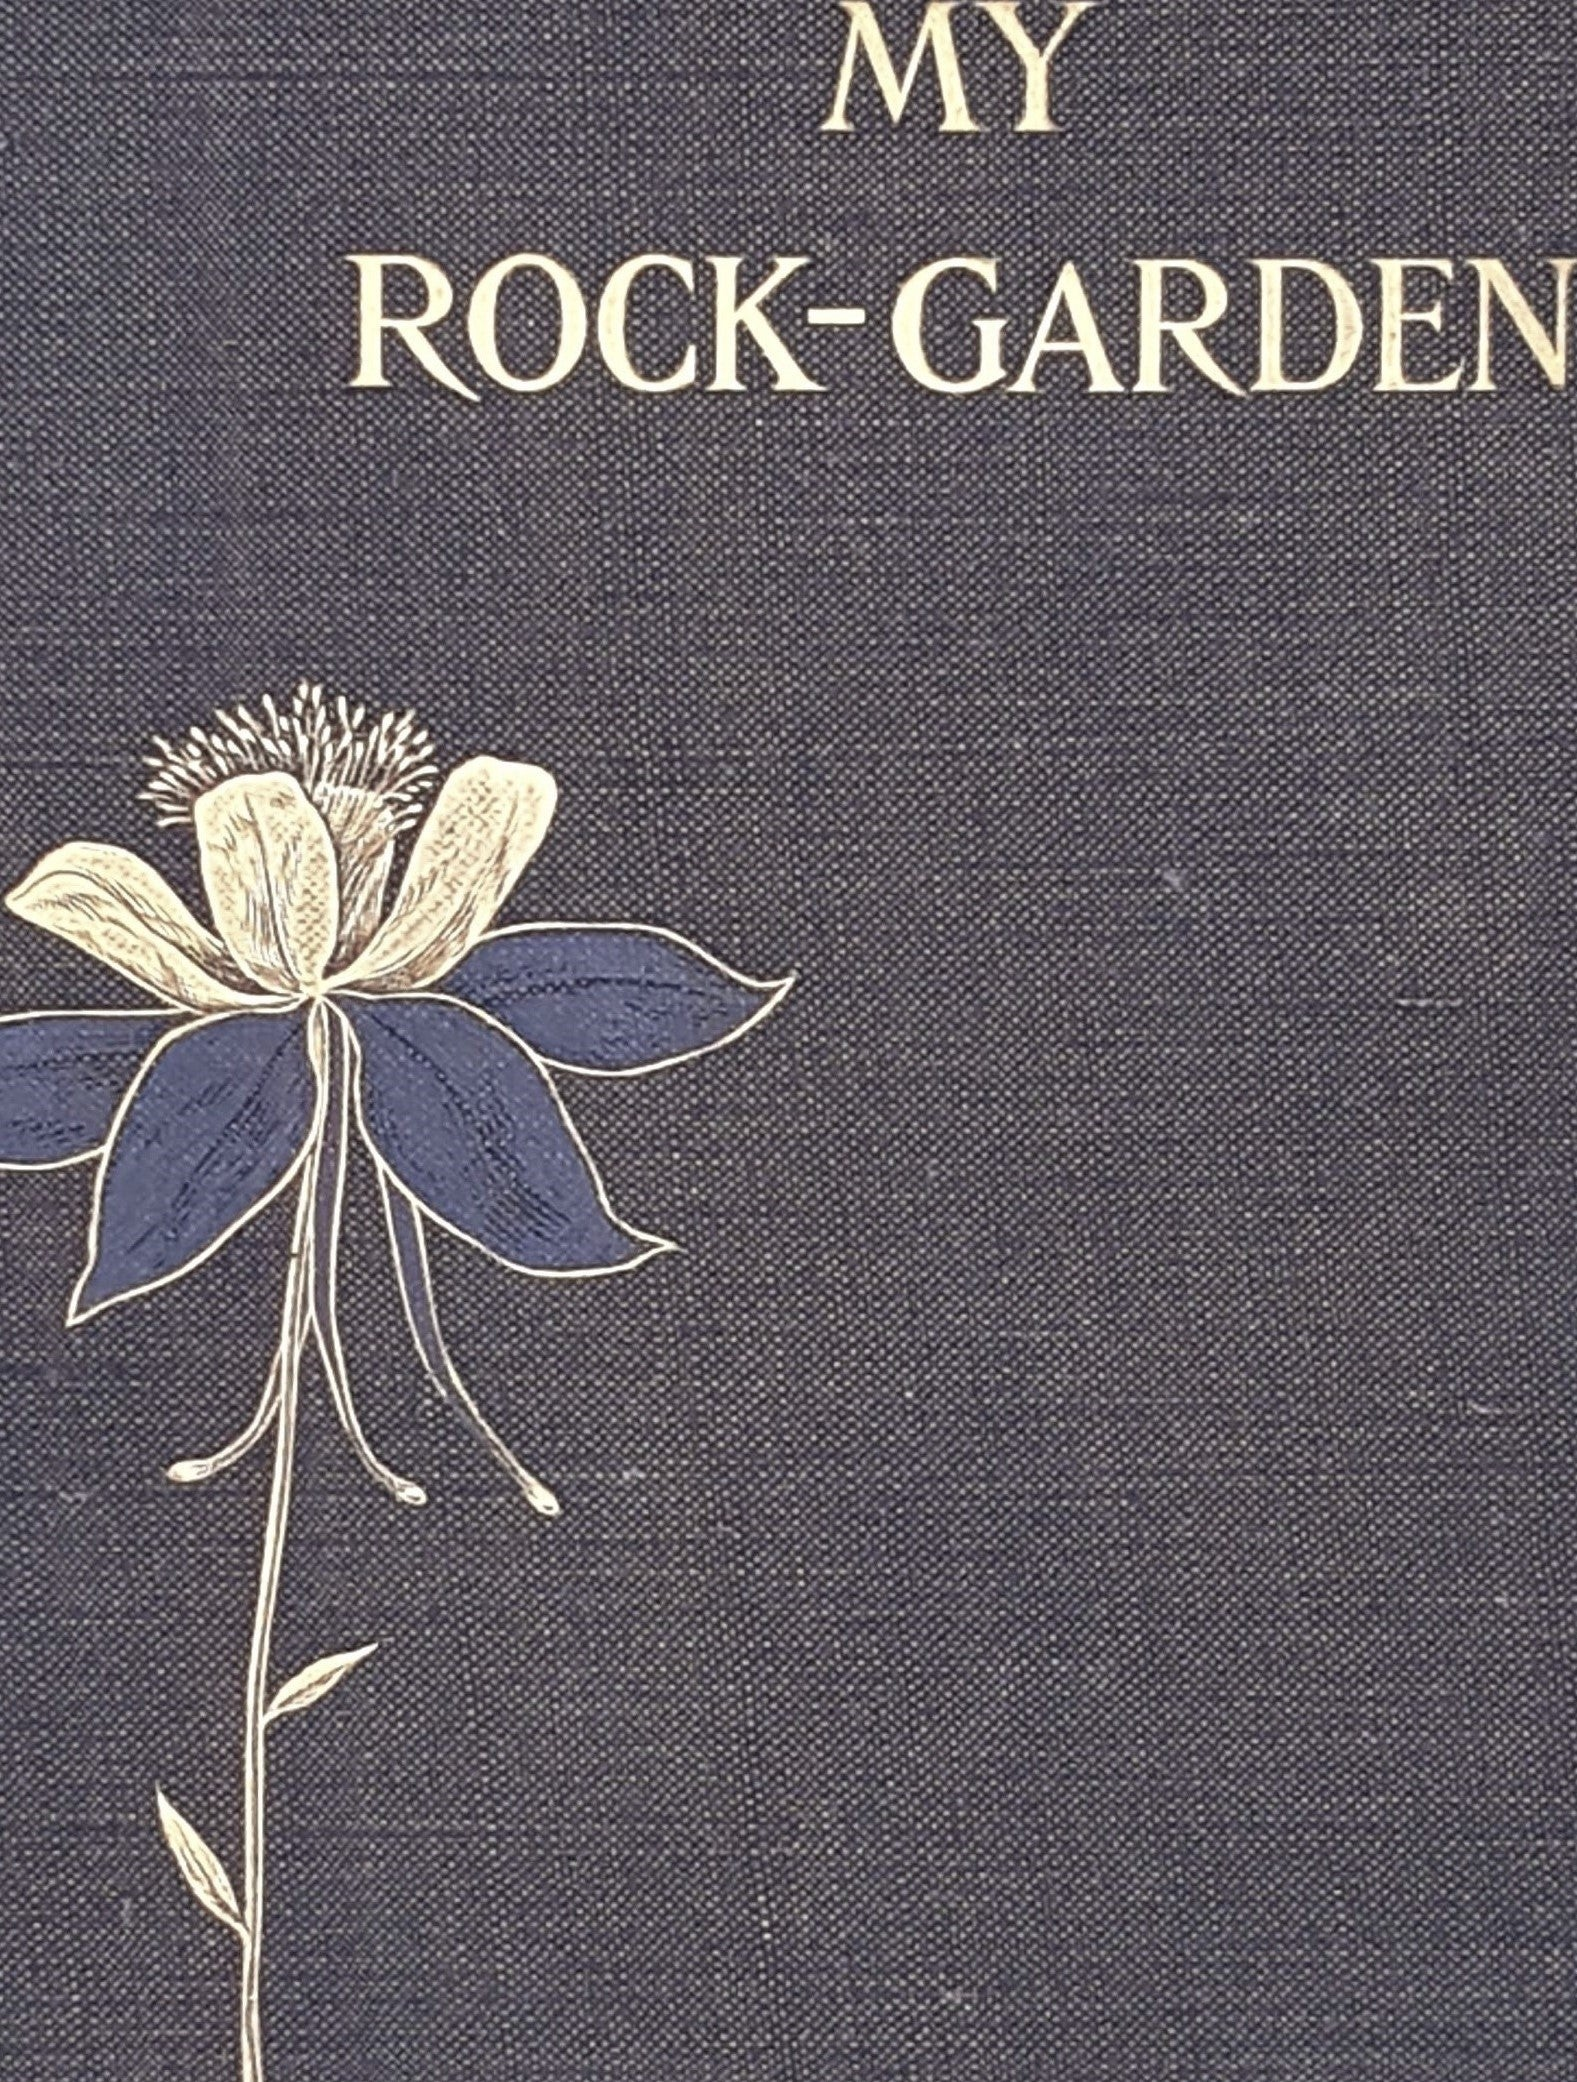 My Rock-Garden by Reginald Farrer 1908